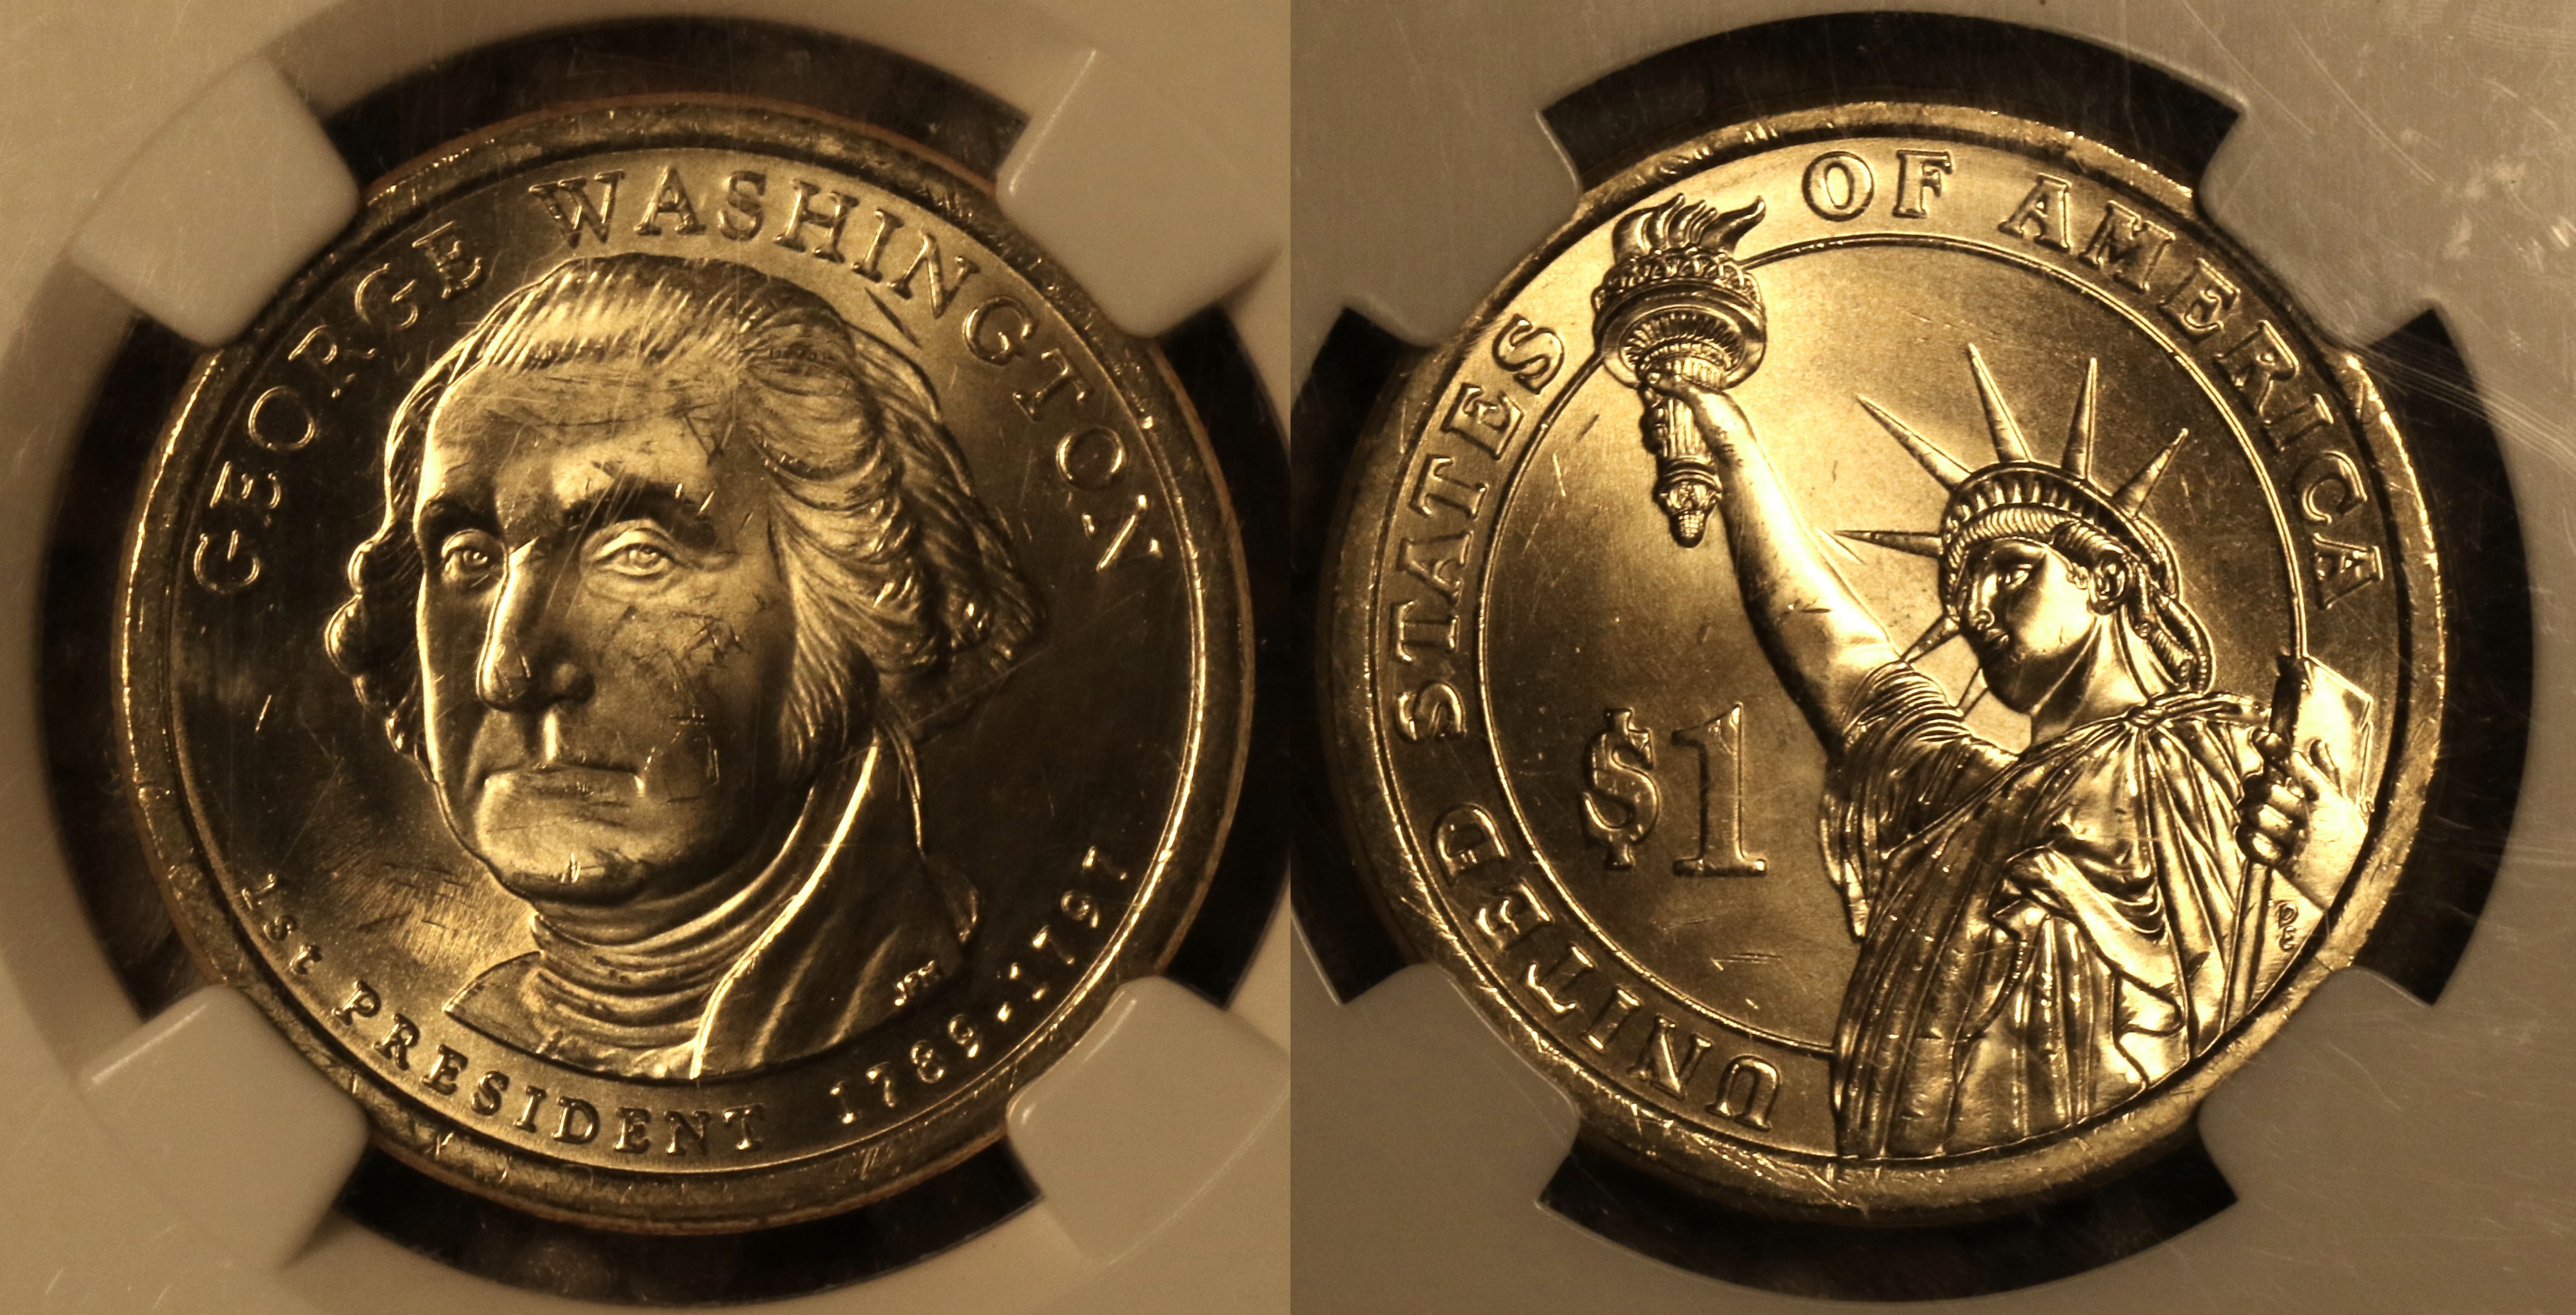 2007 George Washington Presidential Dollar NGC MS-64 Missing Edge Lettering camera